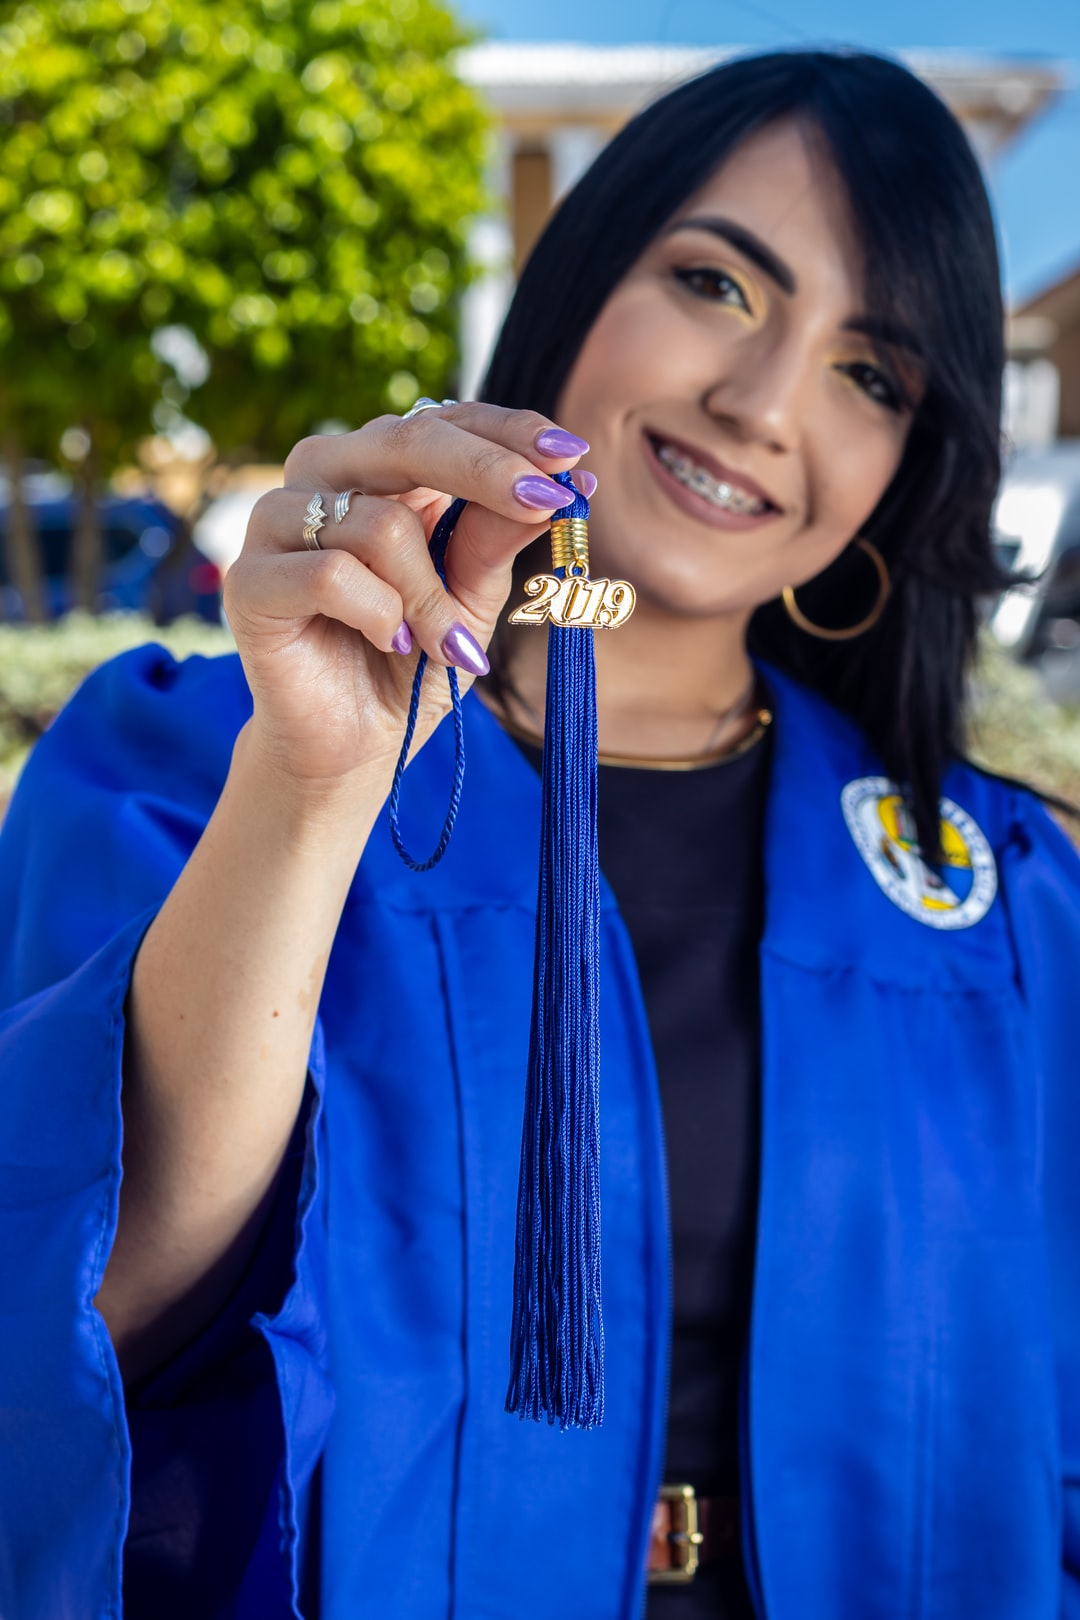 My best friend finished her college bachelor degree in human resources. When she told me she was graduated I insisted in taking her graduation pictures. As I was taking these, i really wanted to capture every detail that i thought would be memorable for her in the long run. I really wanted to capture the 2019 and her Wonder Woman ring because she identifies as a young, strong, independent, entrepreneur.